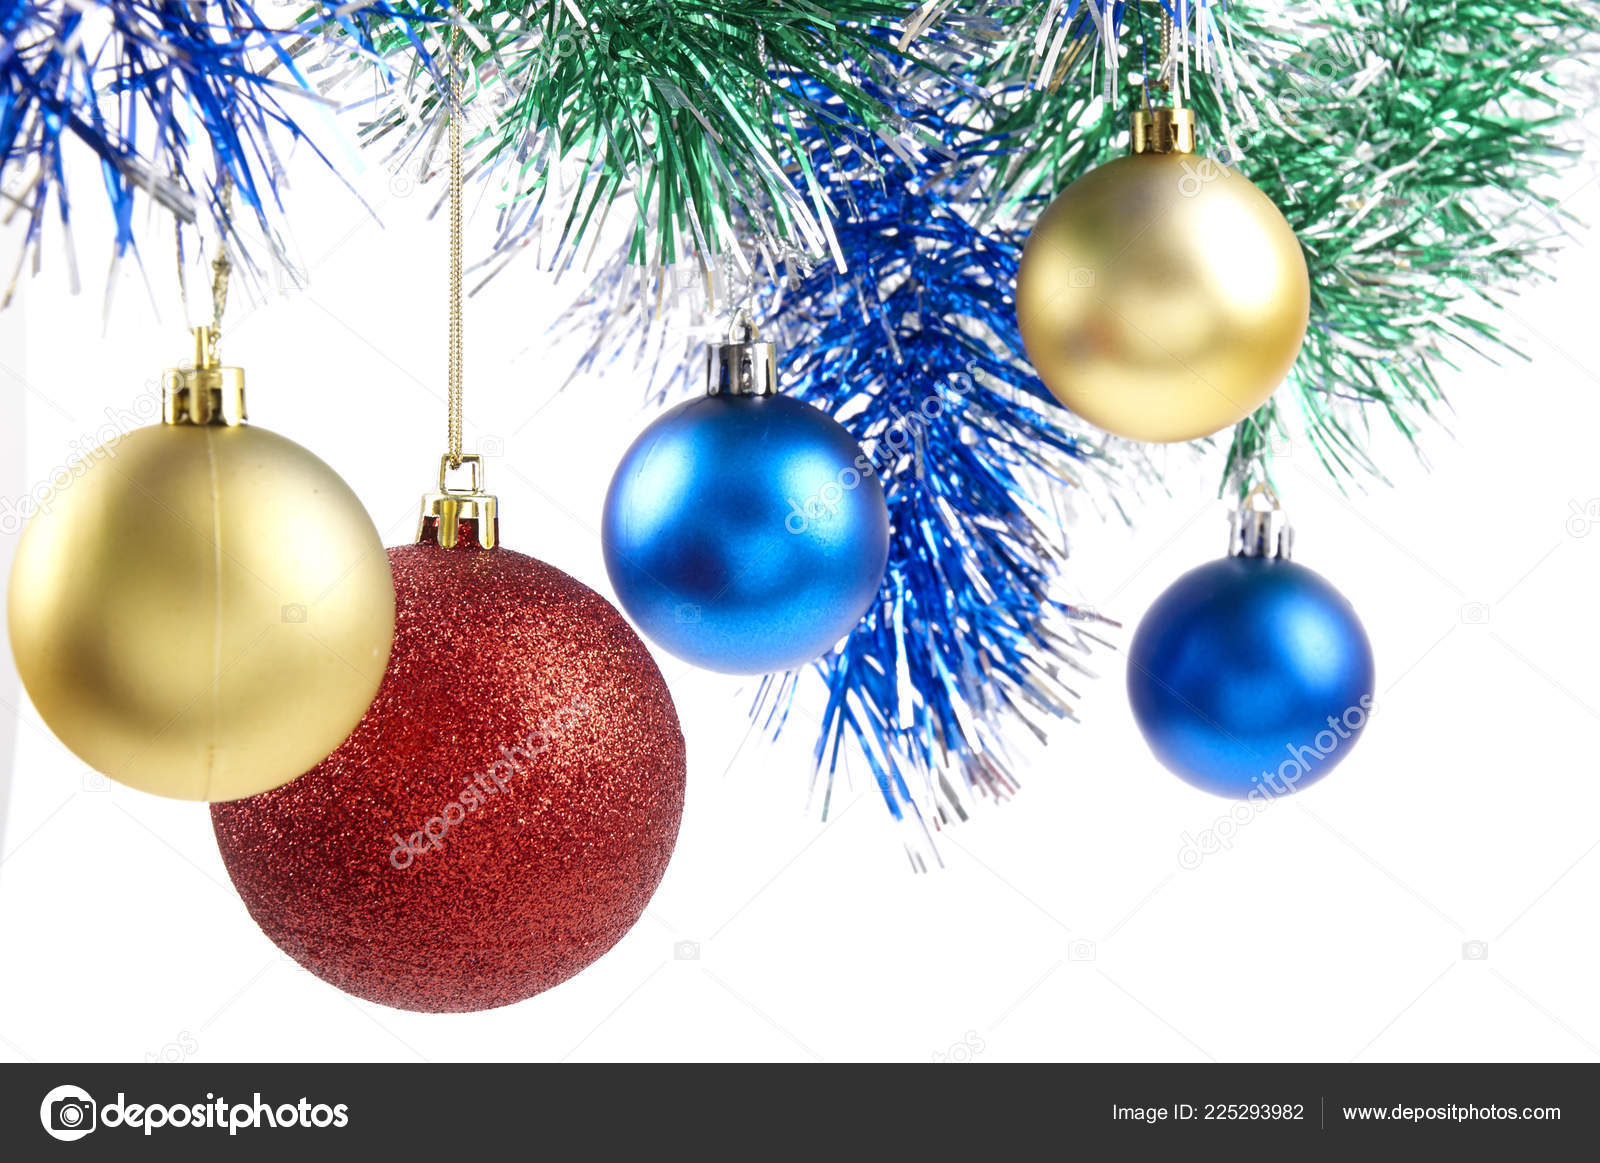 Christmas Ornaments Background.Christmas Ornaments White Background Christmas Decoration